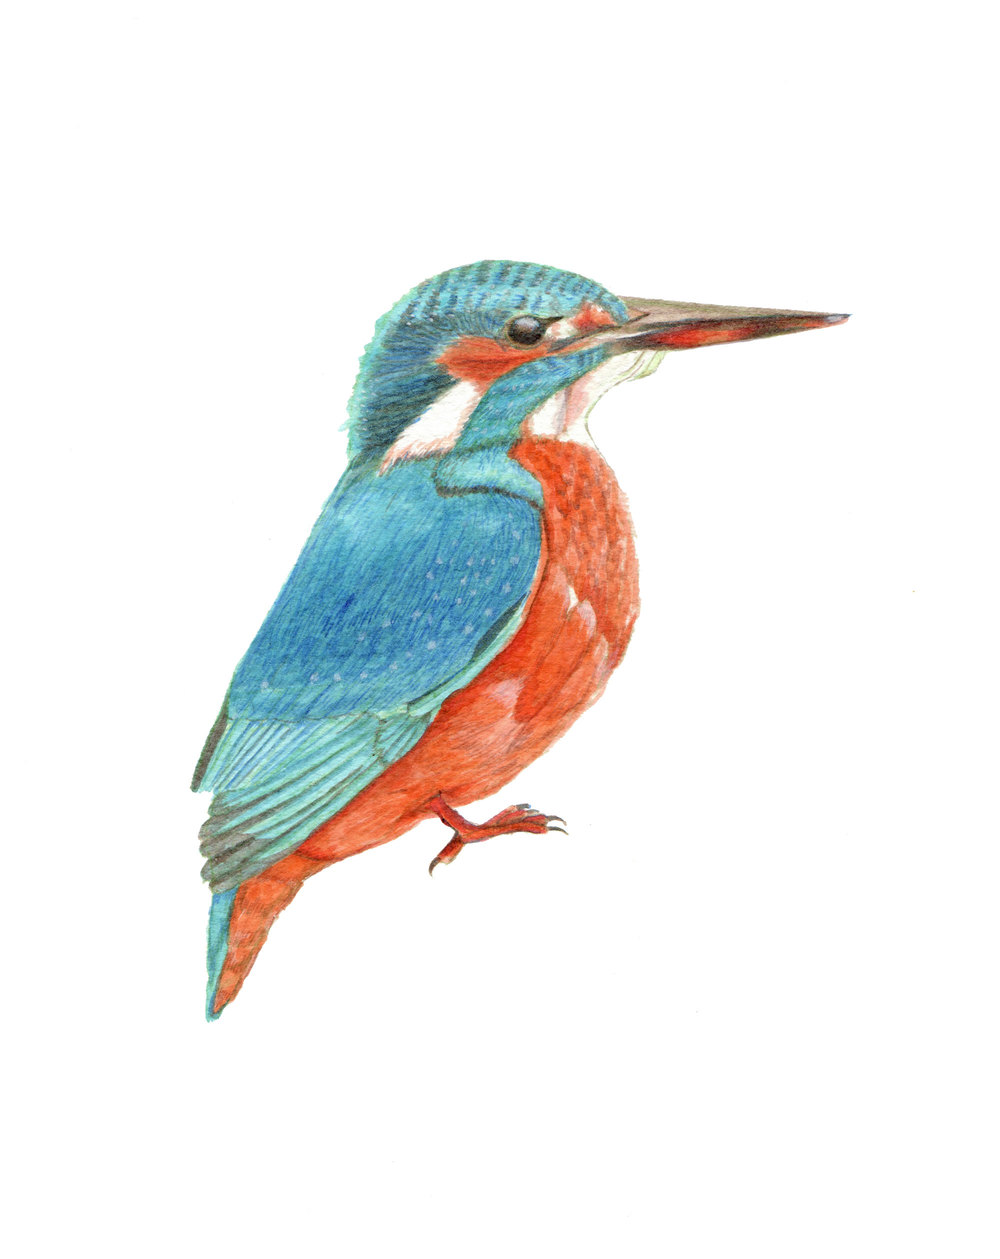 Kingfisher_web.jpg